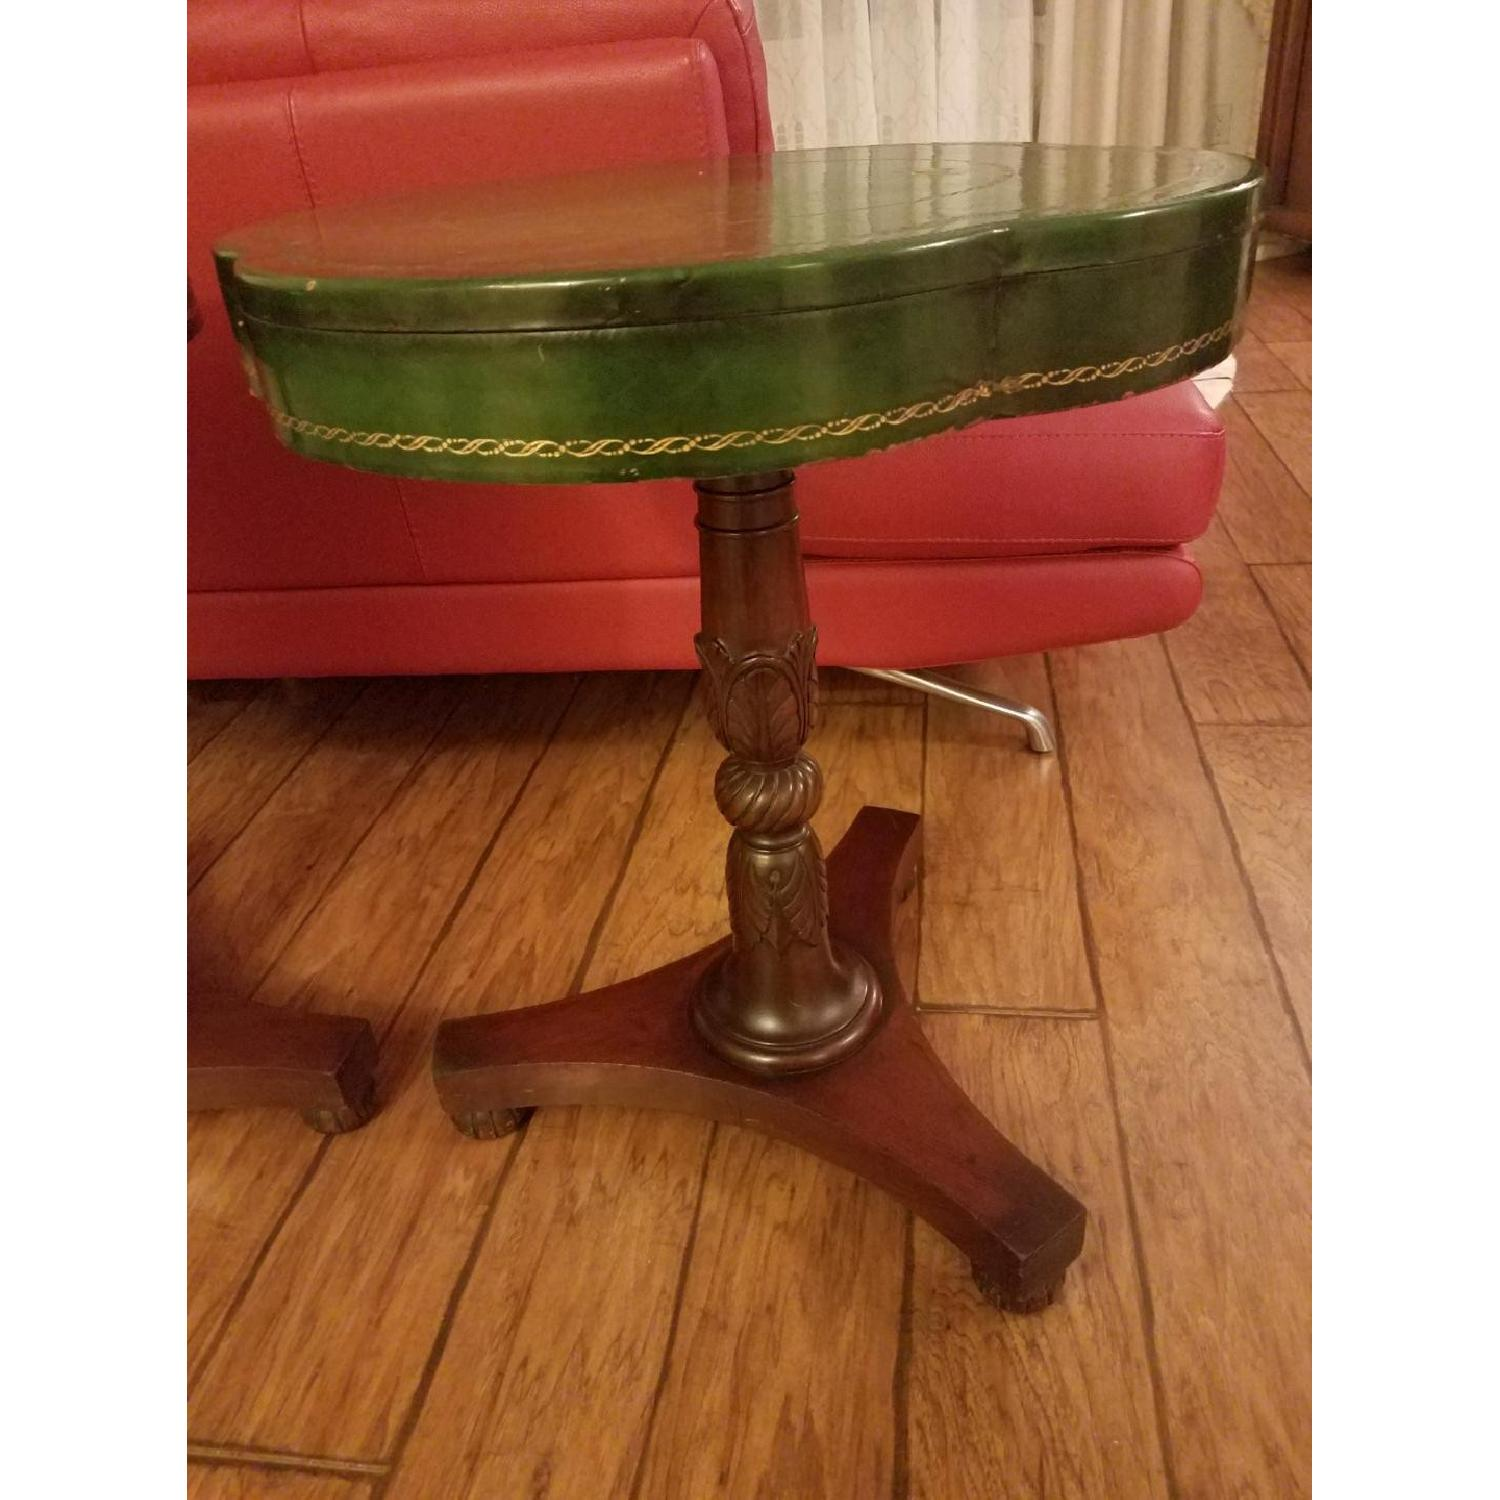 Circa 1910 Green Leather/Mahogany Gold Embossed End Tables-2